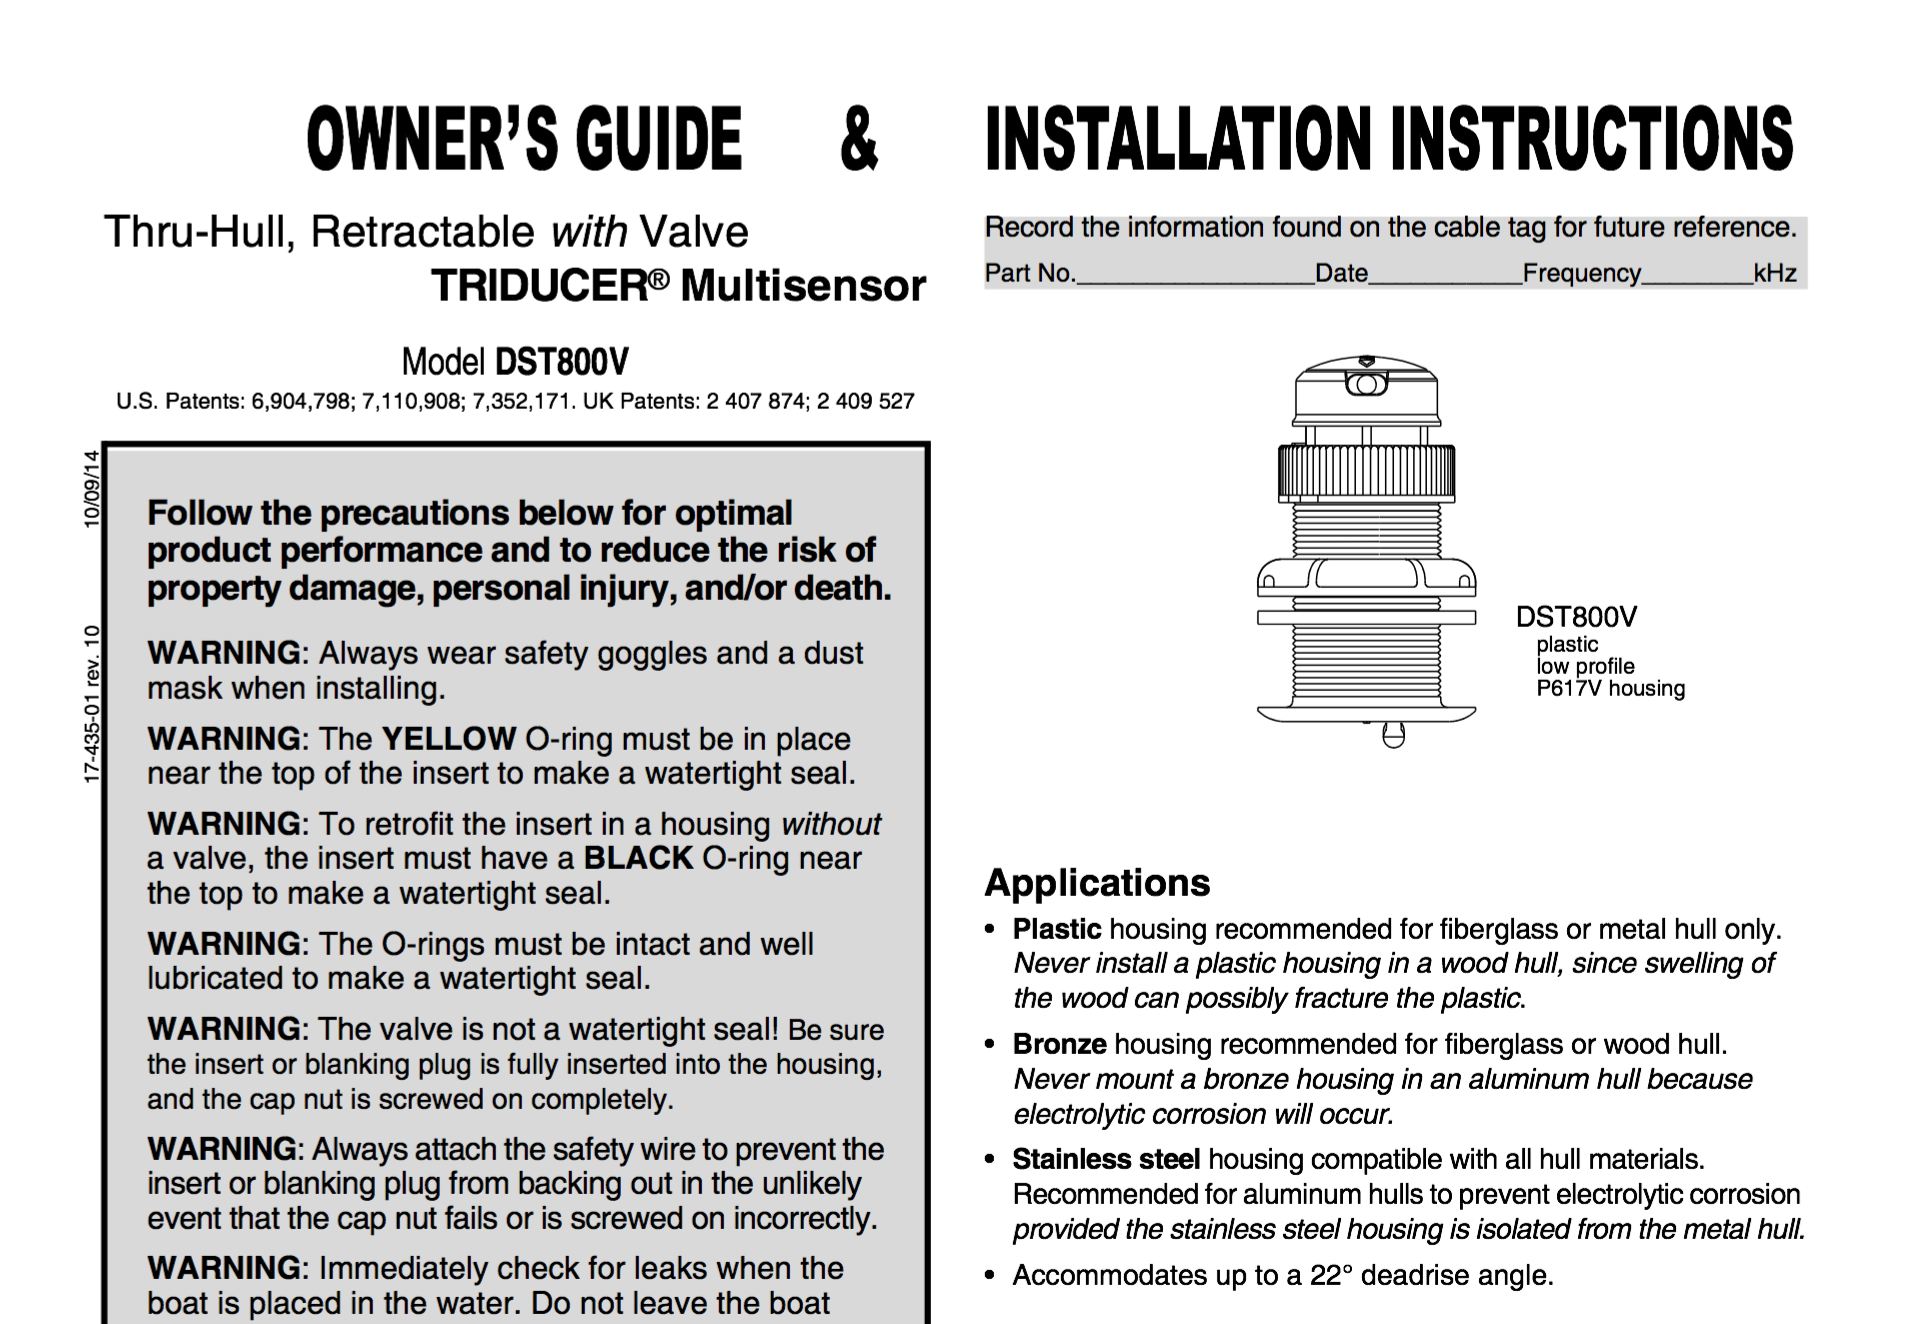 dst800 transducer owners guide